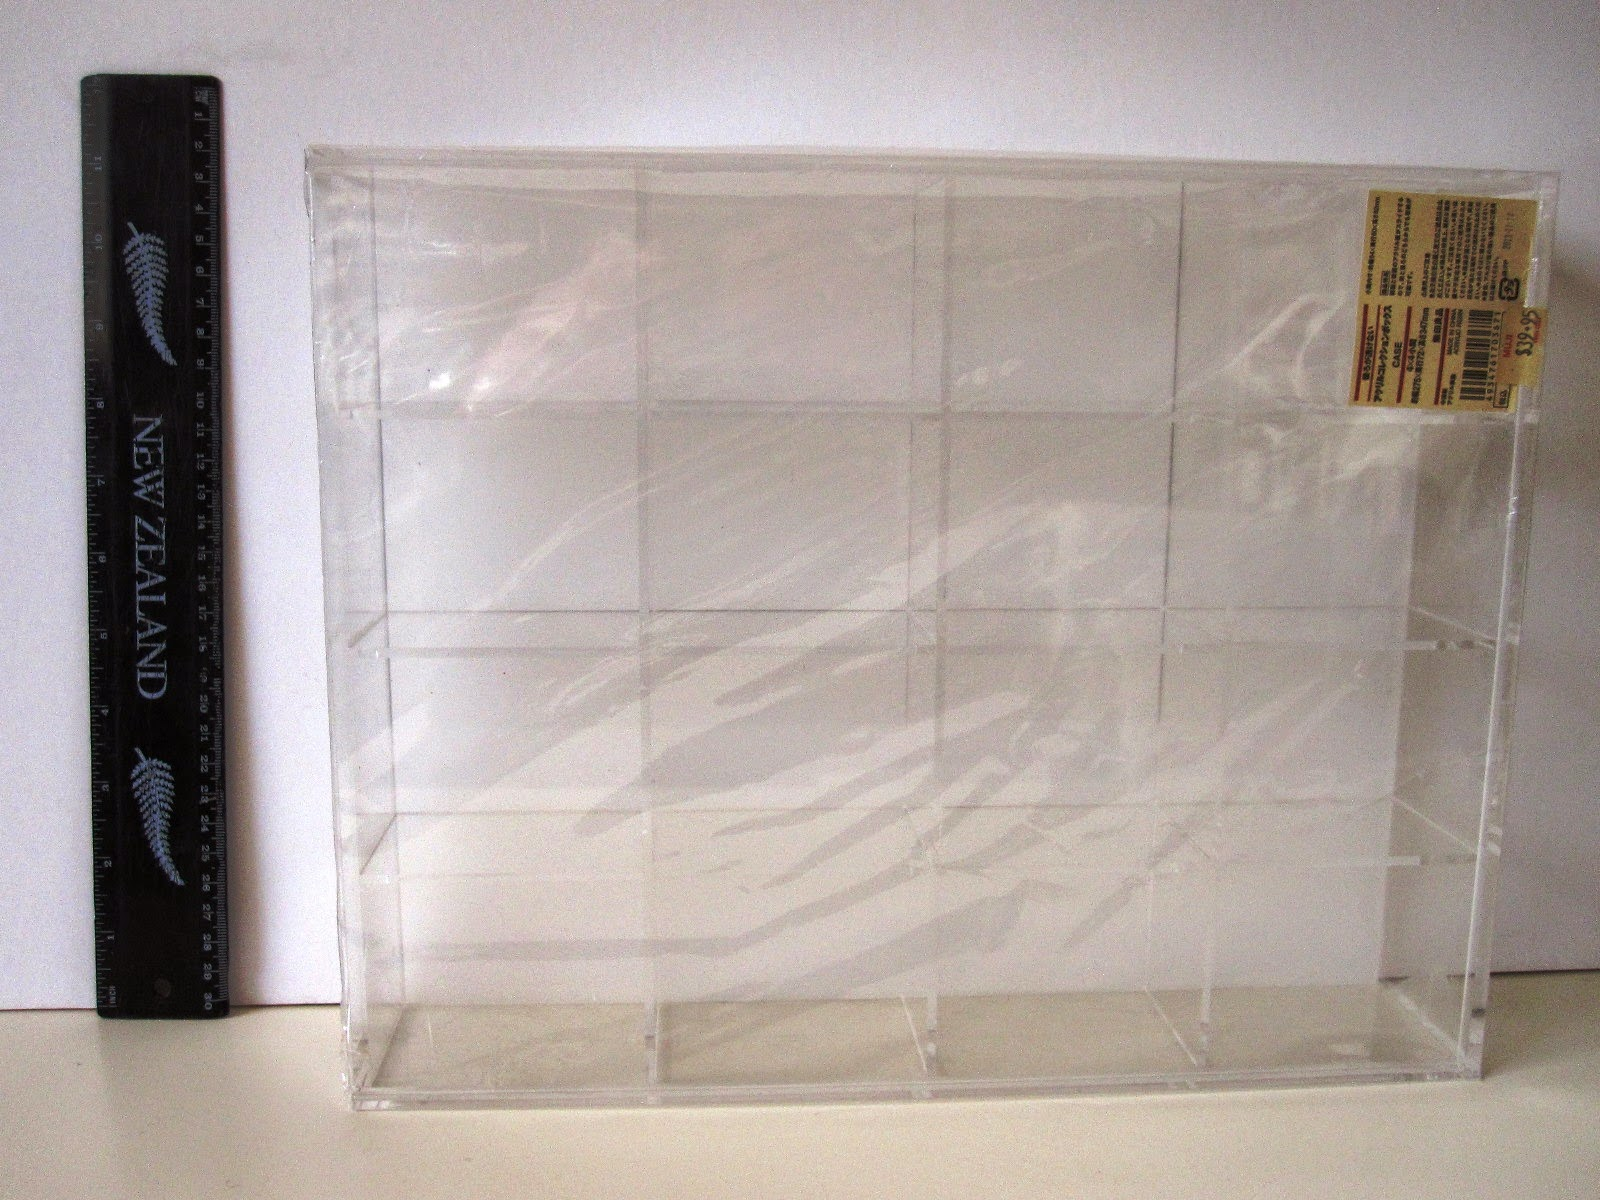 Muji display box with ruler next to it.